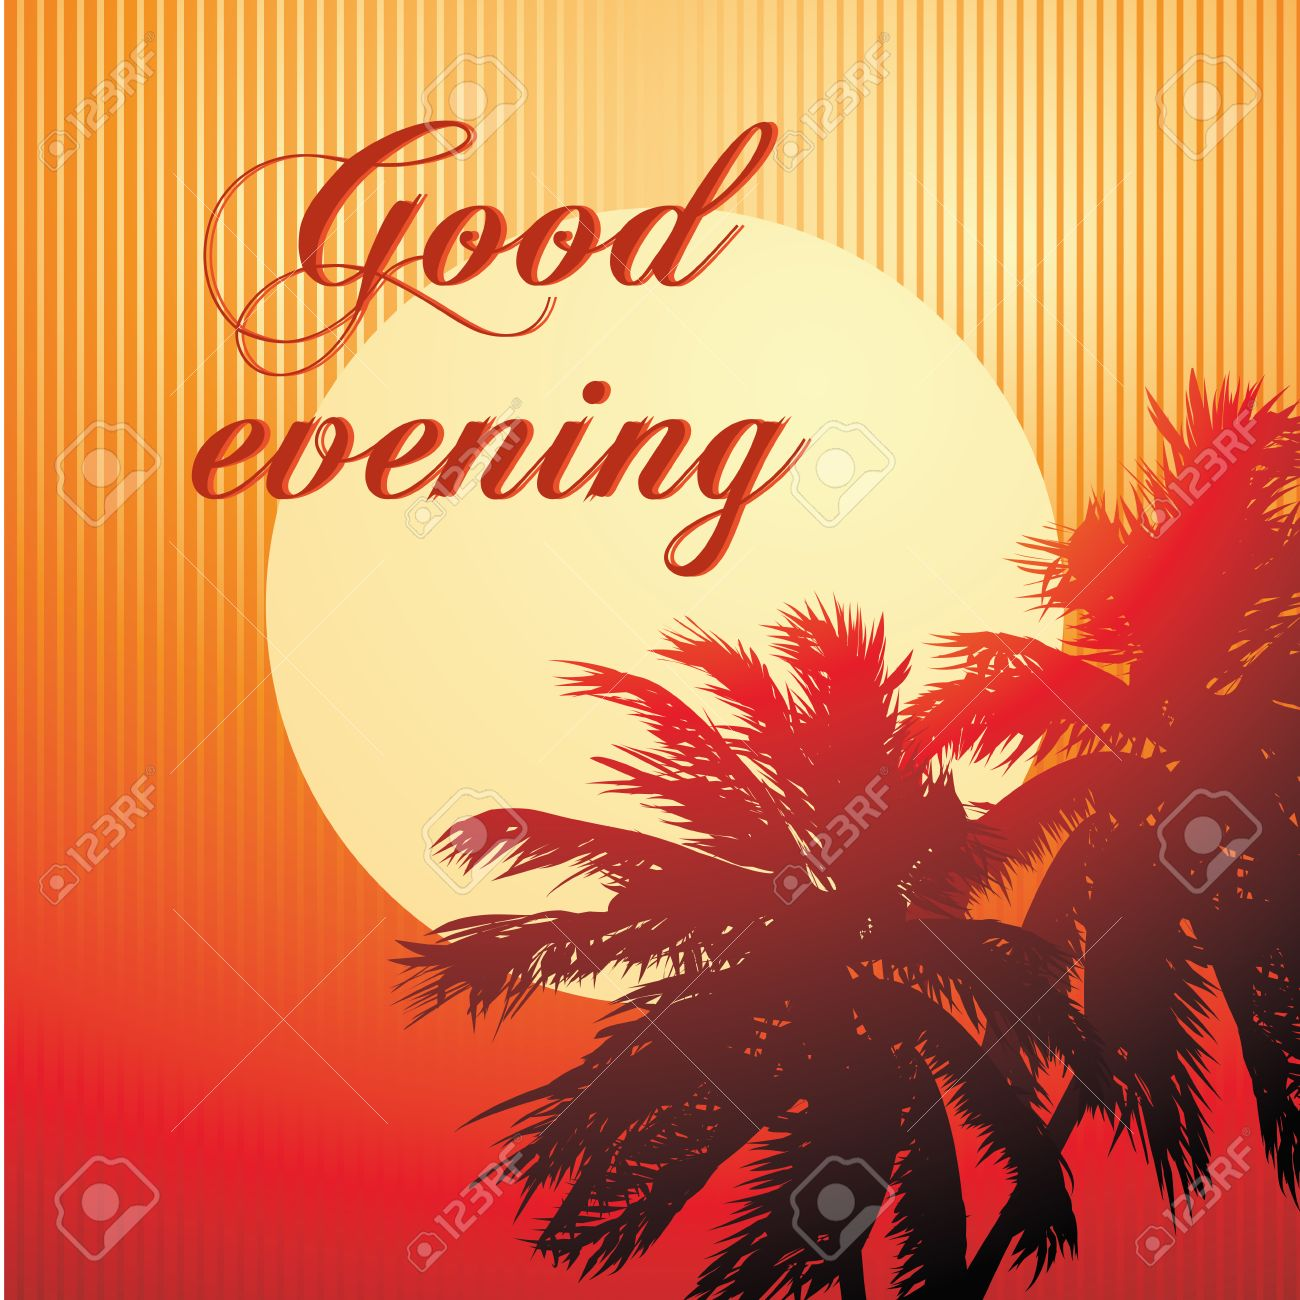 A Good Evening Message In A Beach Background Royalty Free Cliparts